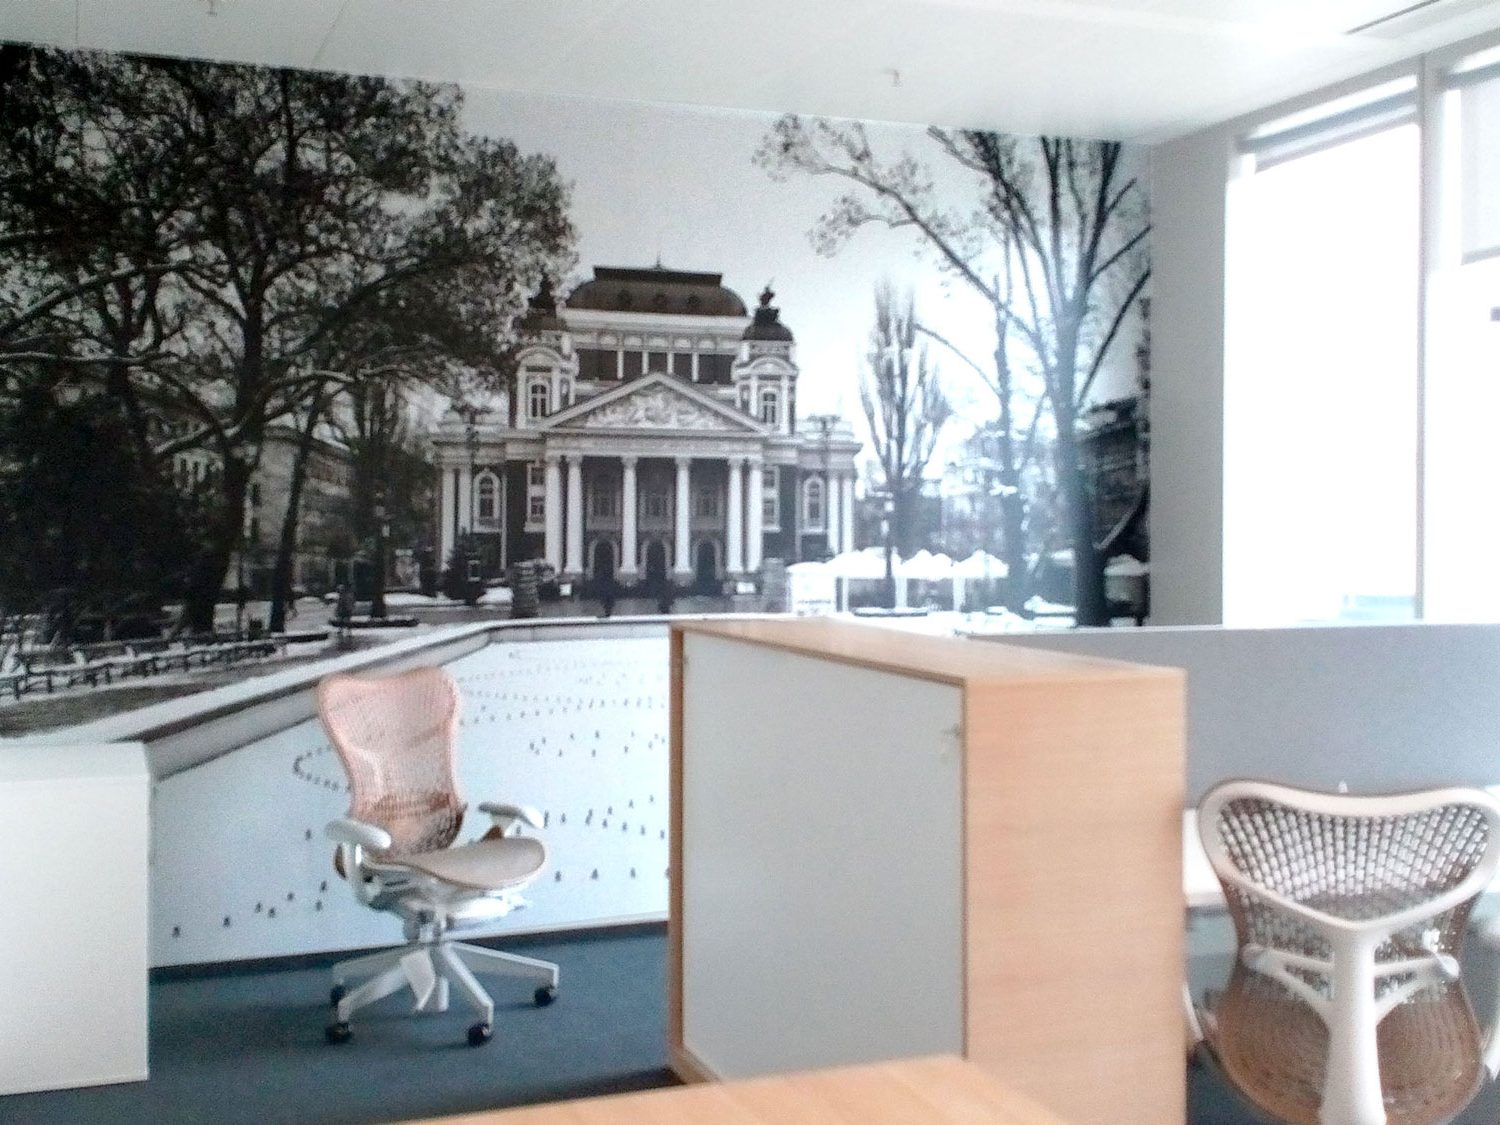 Room with printed wallpaper with image of the national theatre